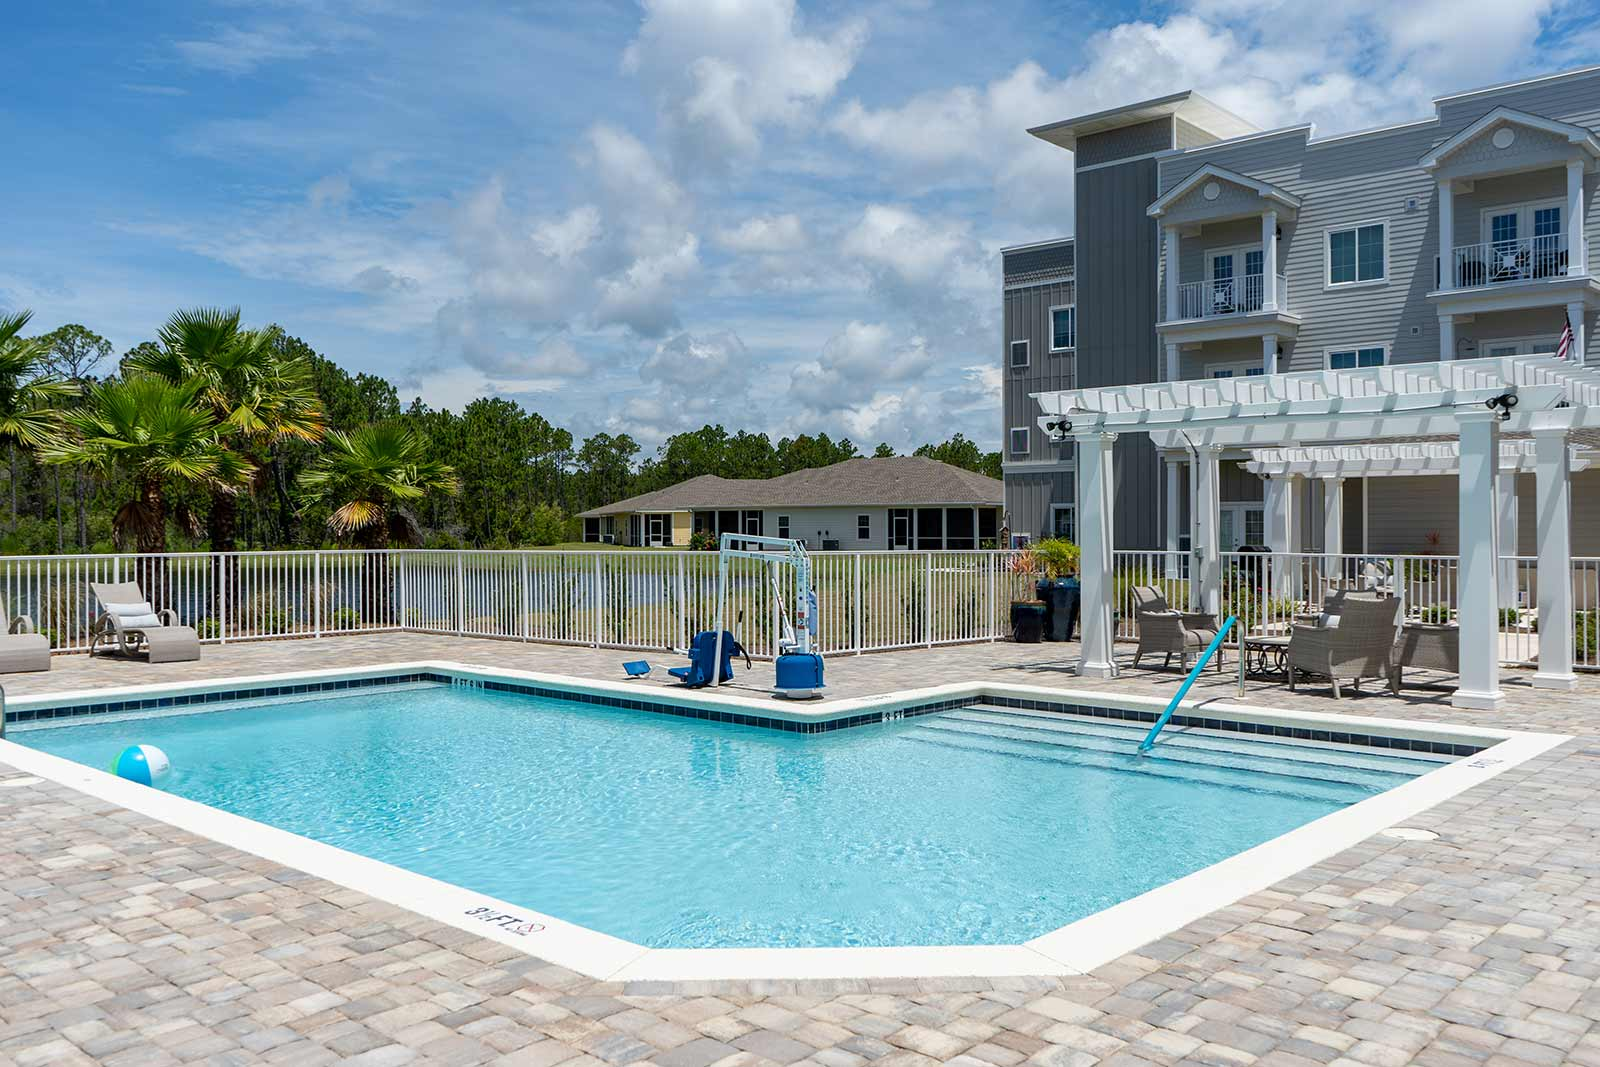 Large Swimming Pool With Deck Chairs At Seagrass Village Of Panama City Beach